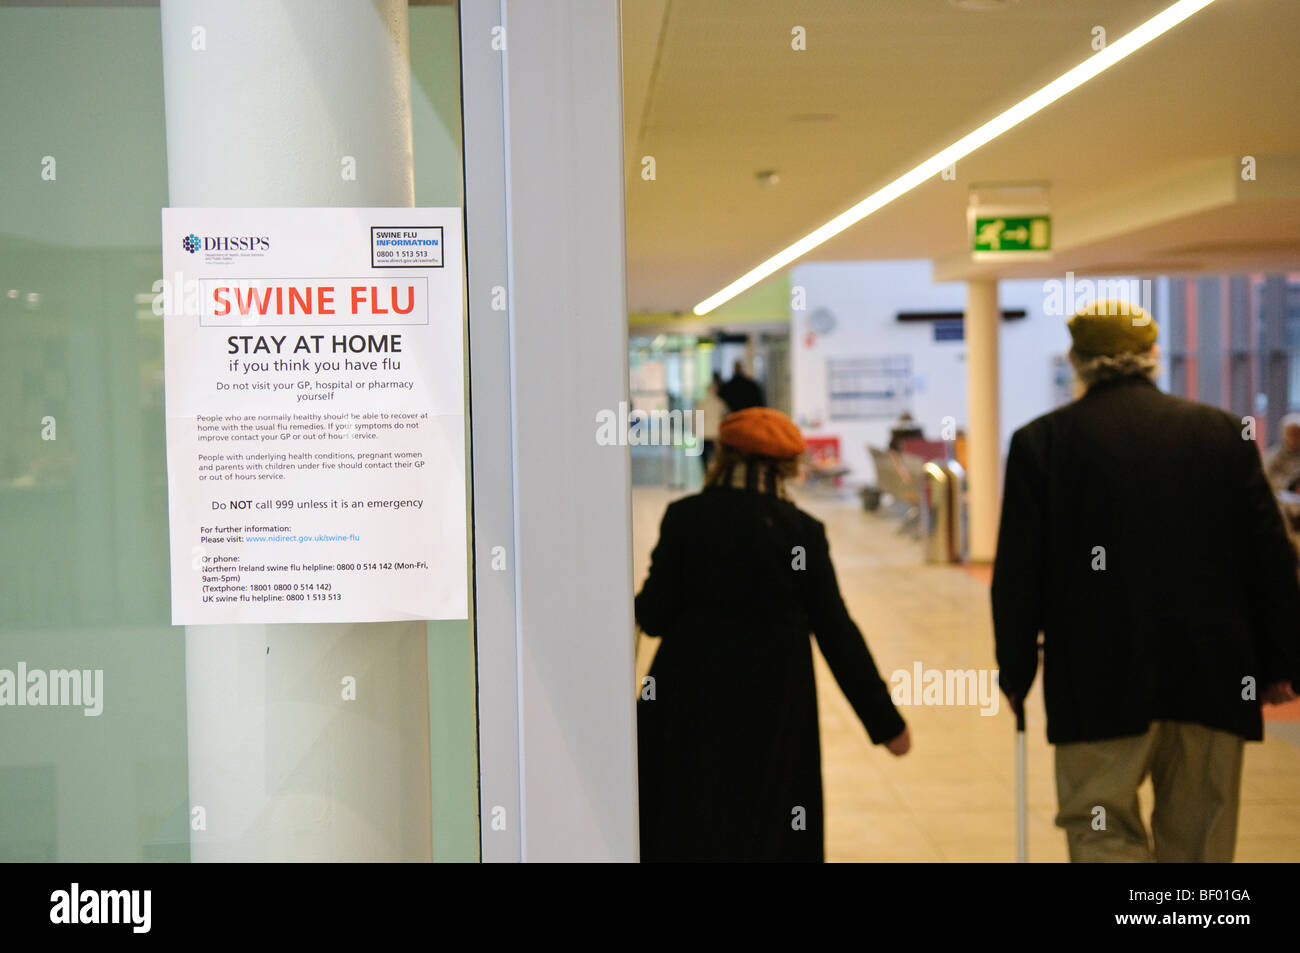 Swine Flu information posters on display at a GP Surgery in Northern Ireland. - Stock Image